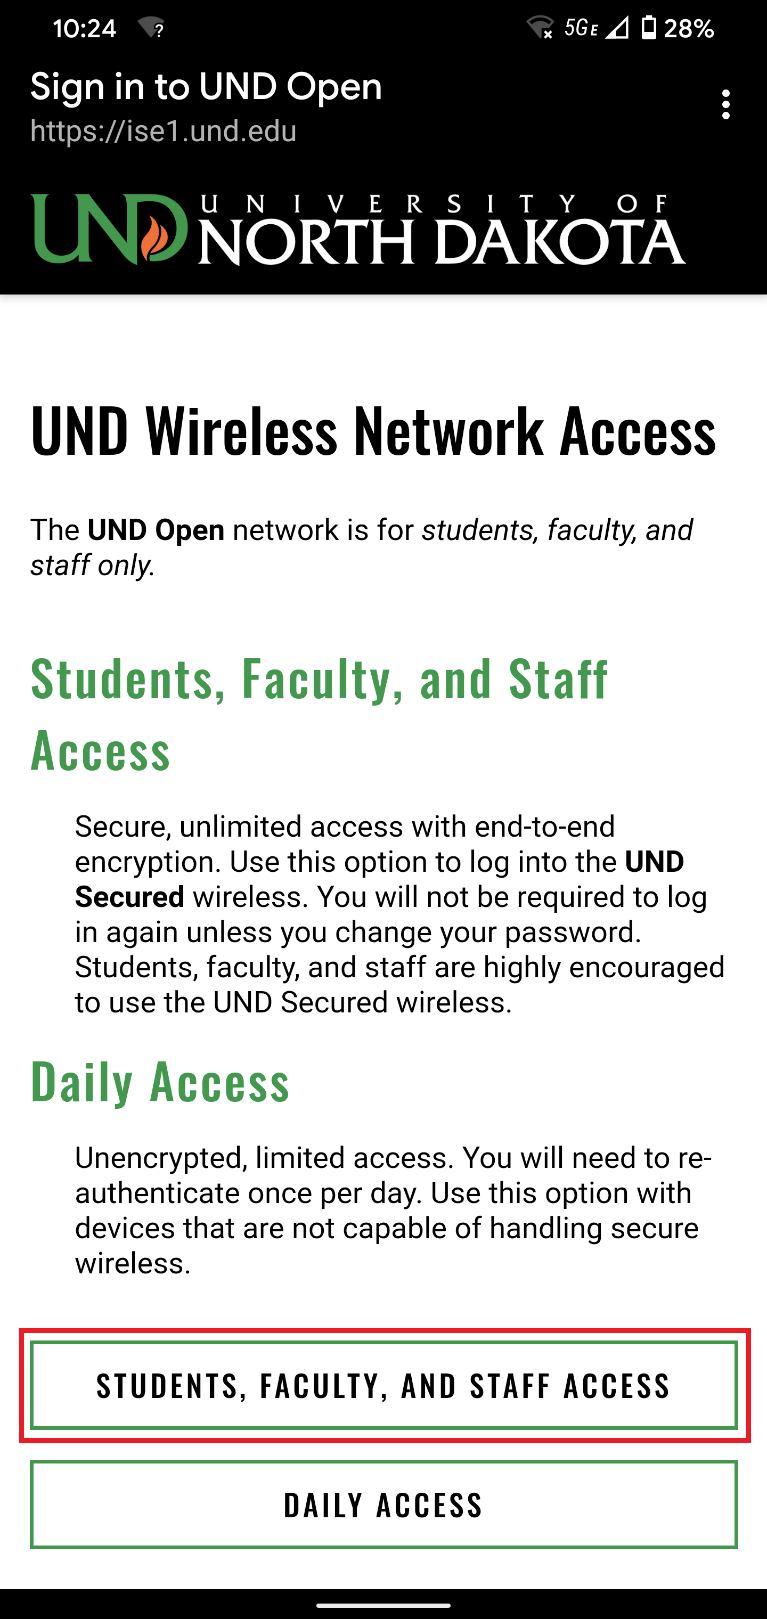 Now open a browser window to http://network.und.edu/and selectStudents, Faculty, and Staff Access.